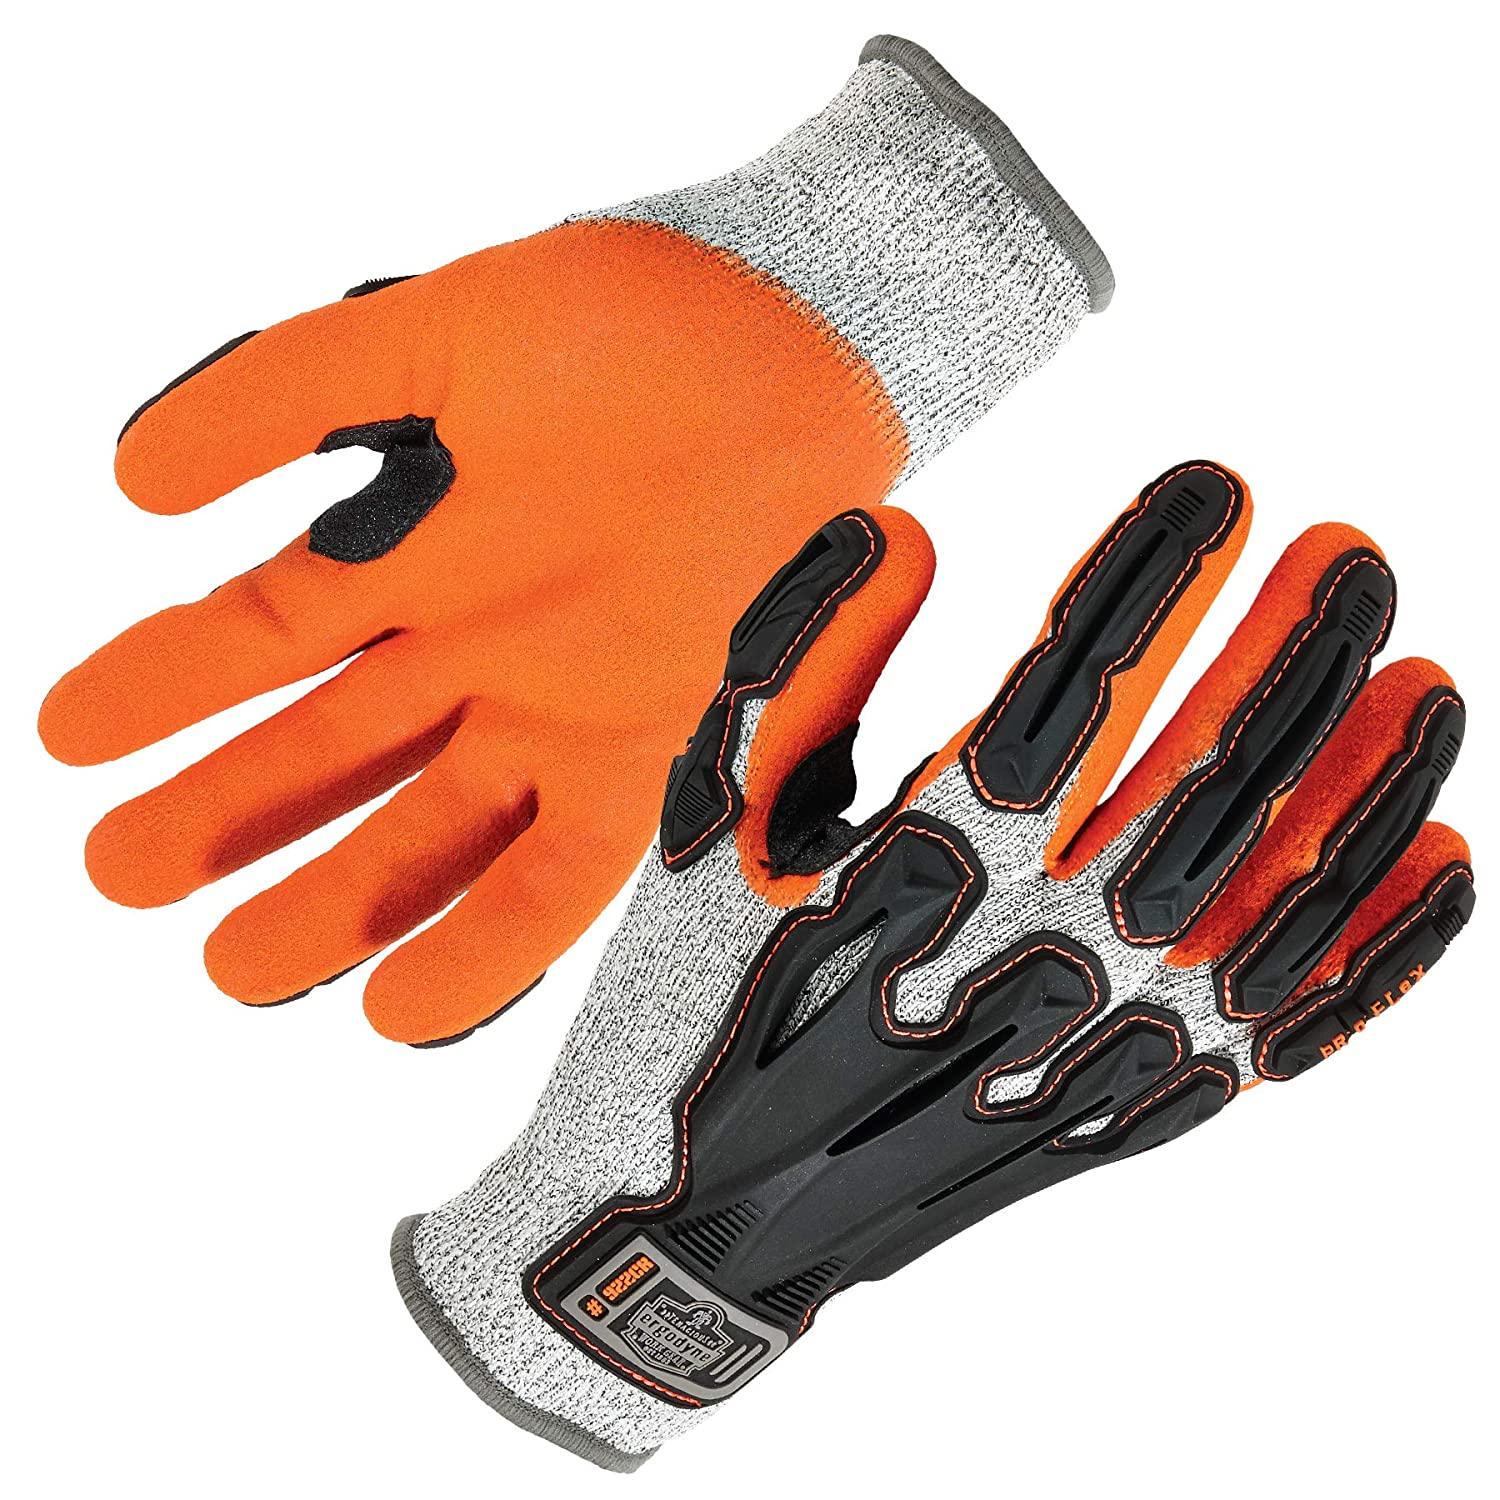 ProFlex 922CR Level 5 Cut Resistant Nitrile-Dipped Work Gloves XX-Large Gray